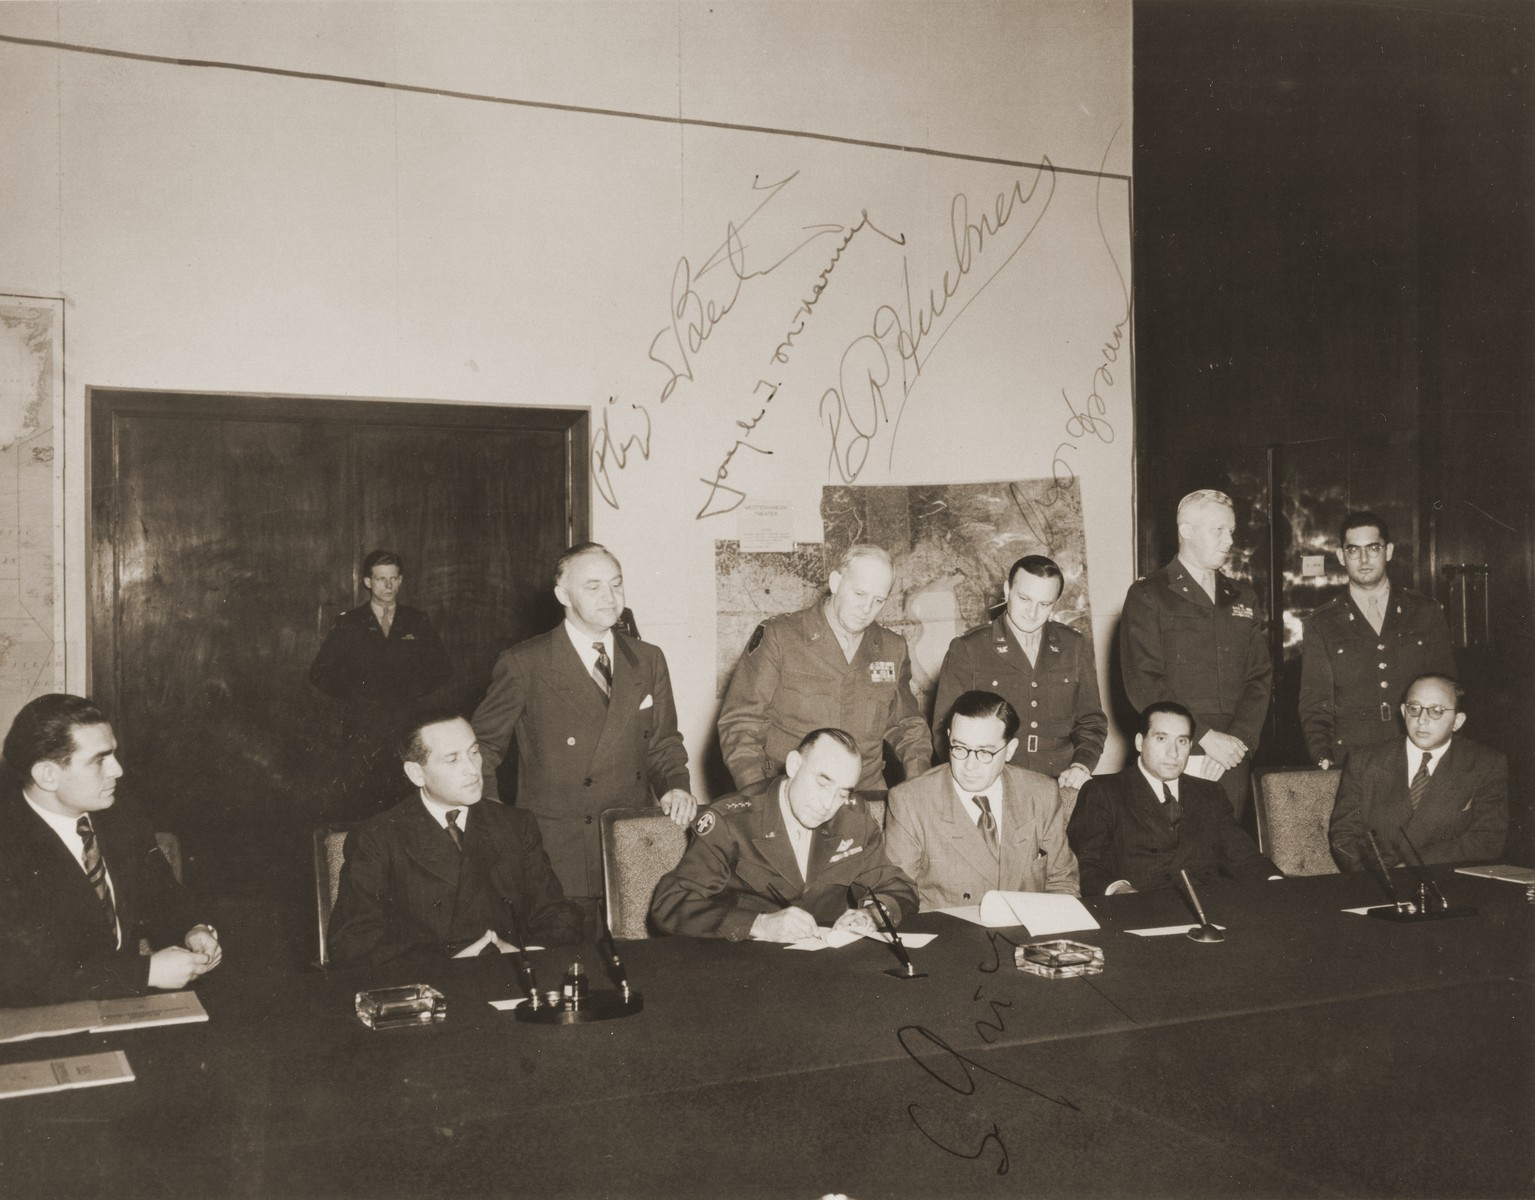 General Joseph McNarney signs the charter of recognition of the Central Committee of Liberated Jews in Bavaria, whereby the American Army acknowledged the Central Committee as the official representative body of Jewish DPs in the American Zone of Germany.  Pictured standing in the back row, from left to right, are: Rabbi Philip Bernstein; General Clarence Huebner; Abraham Hyman; Colonel George Scithers; Rabbi Herbert Friedman.  Seated at the table, from left to right, are: Leon Retter (Aryeh Nesher); unknown; General Joseph McNarney; Samuel Gringauz; unknown; and Boris Pliskin.